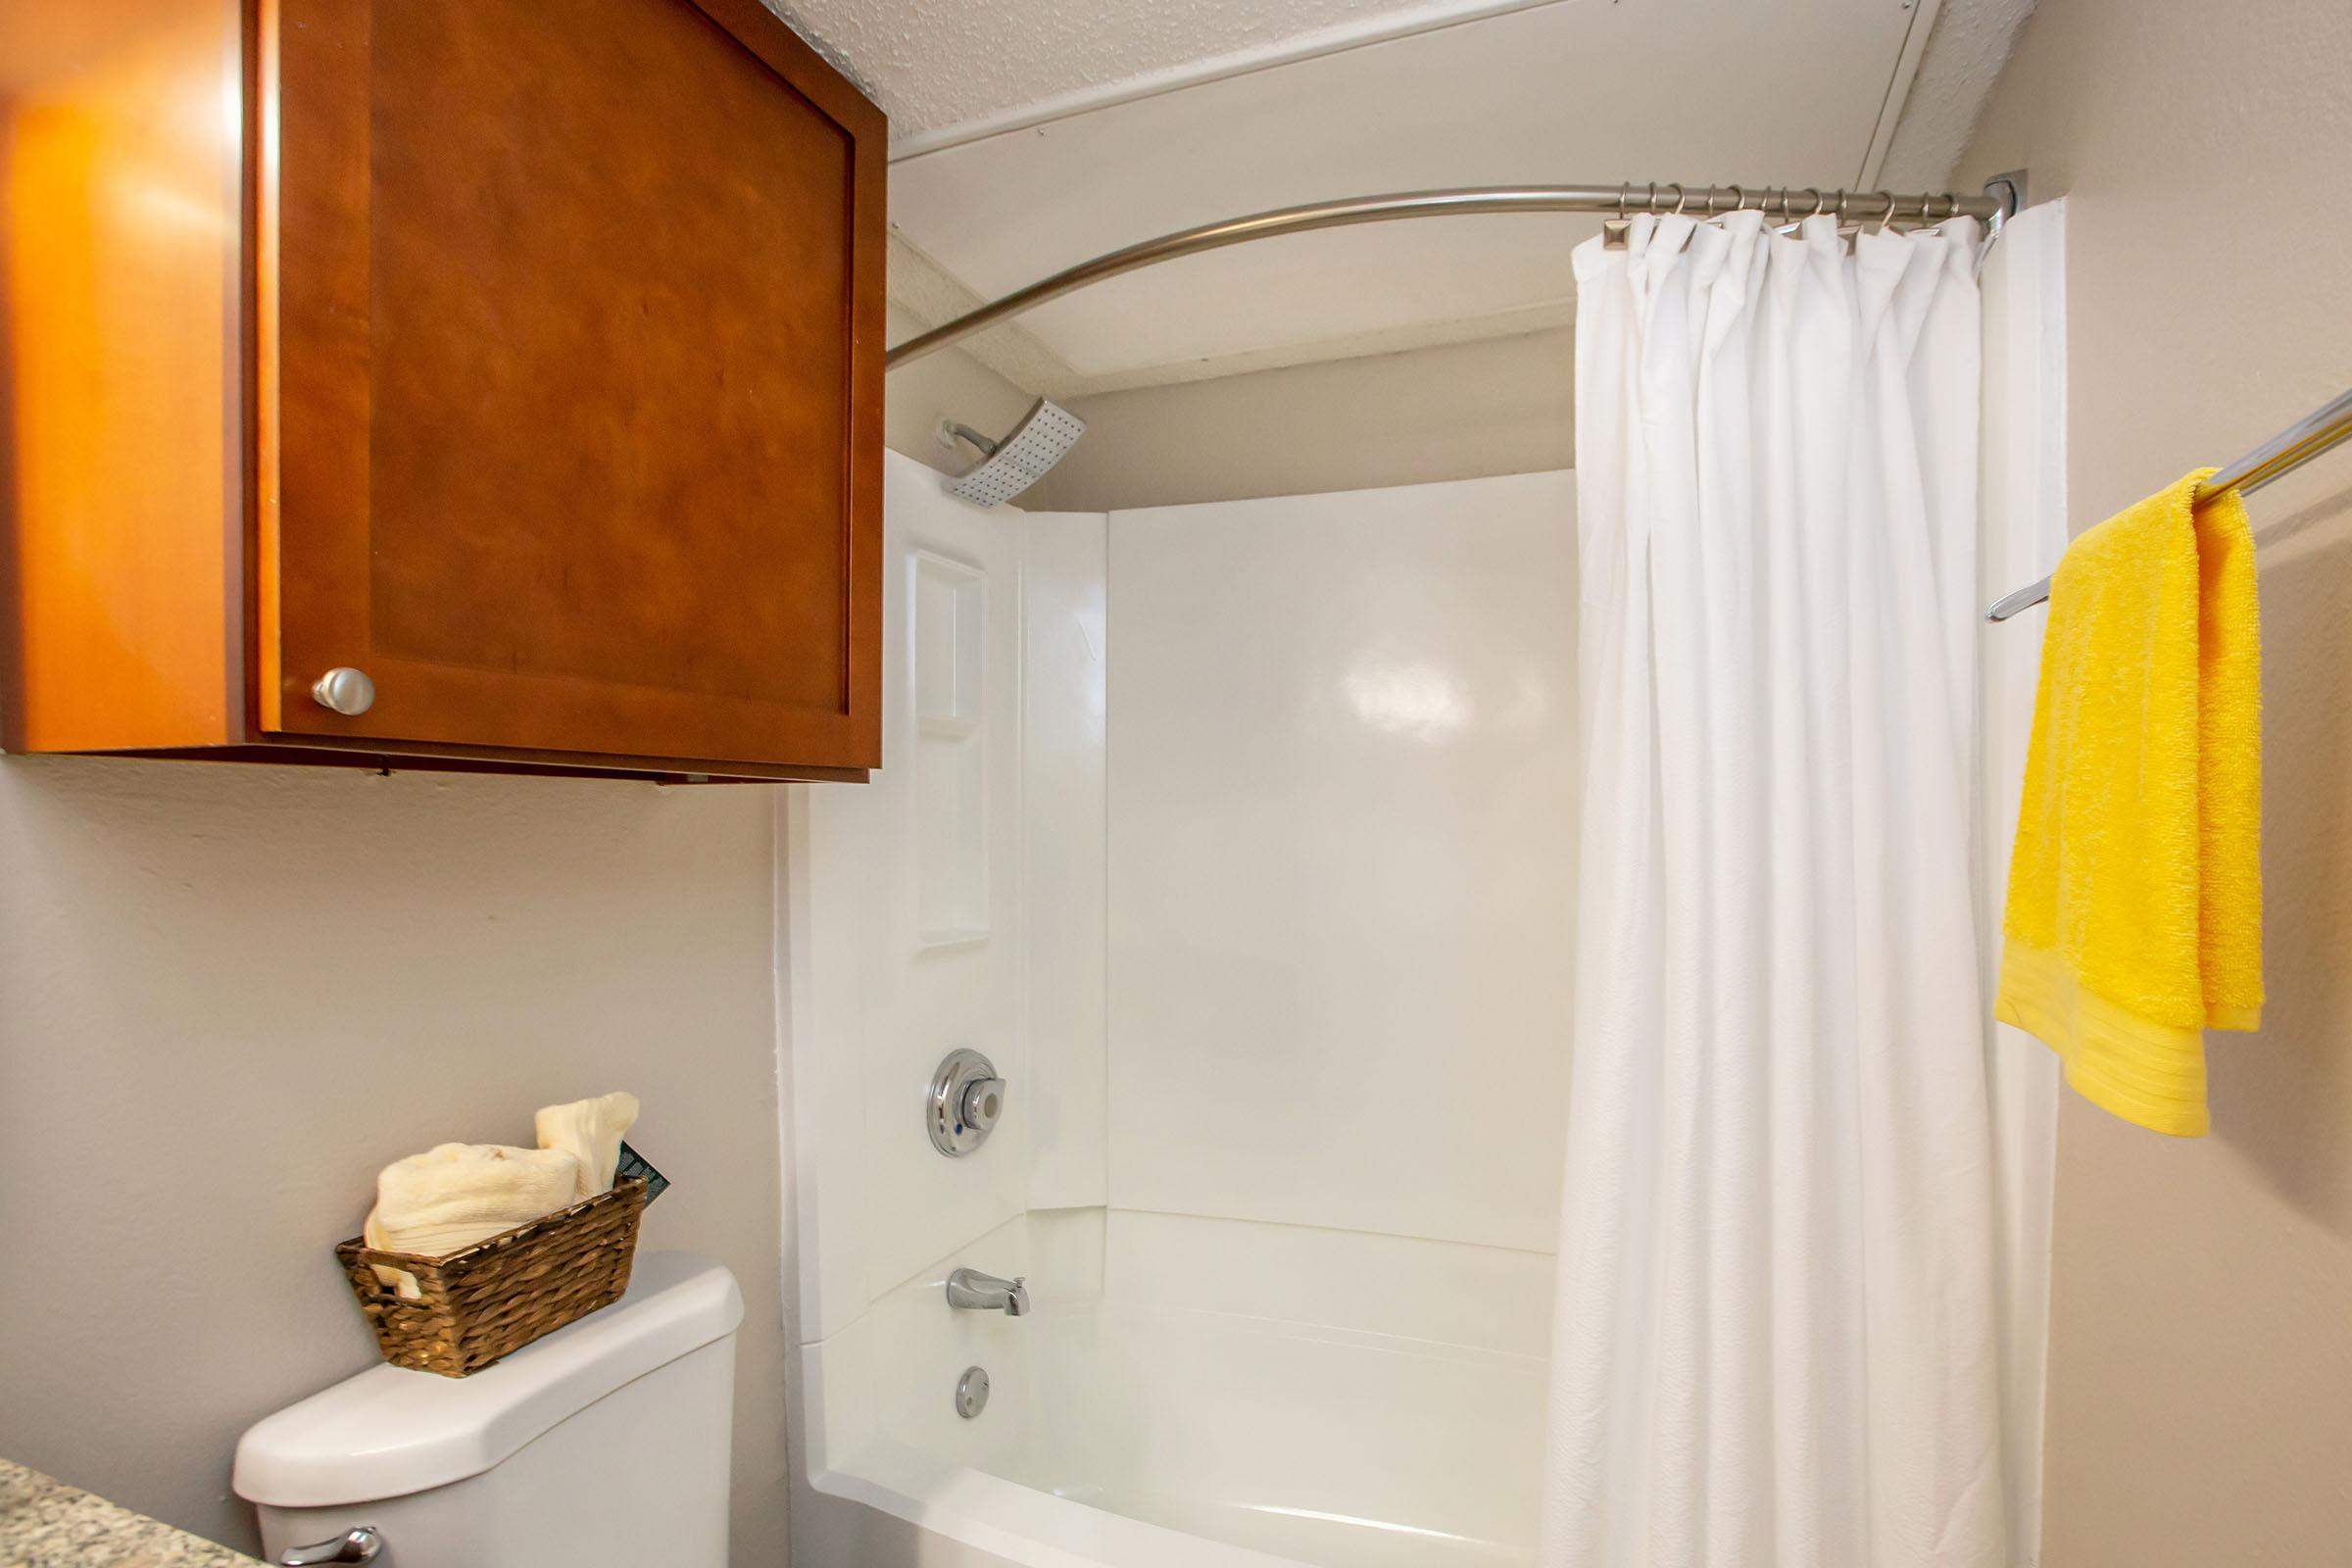 a shower with a towel hanging on the wall